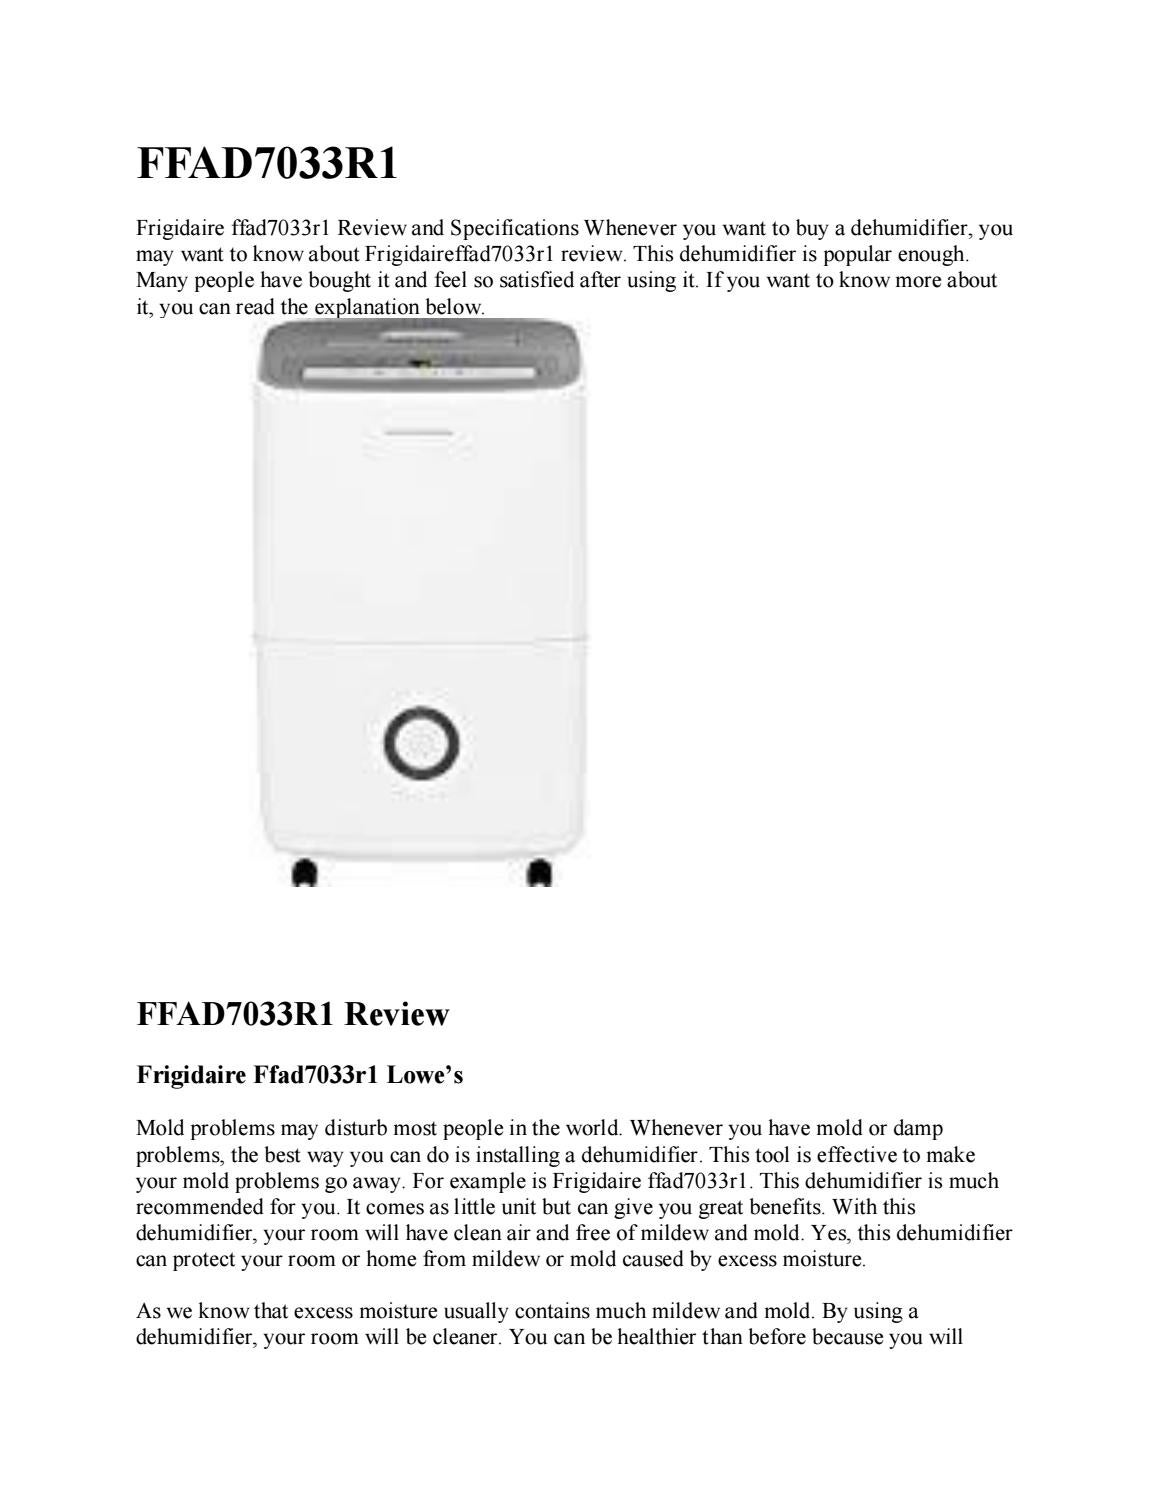 Frigidaire Ffad7033r1 Review By Kitchen Home Stores Issuu